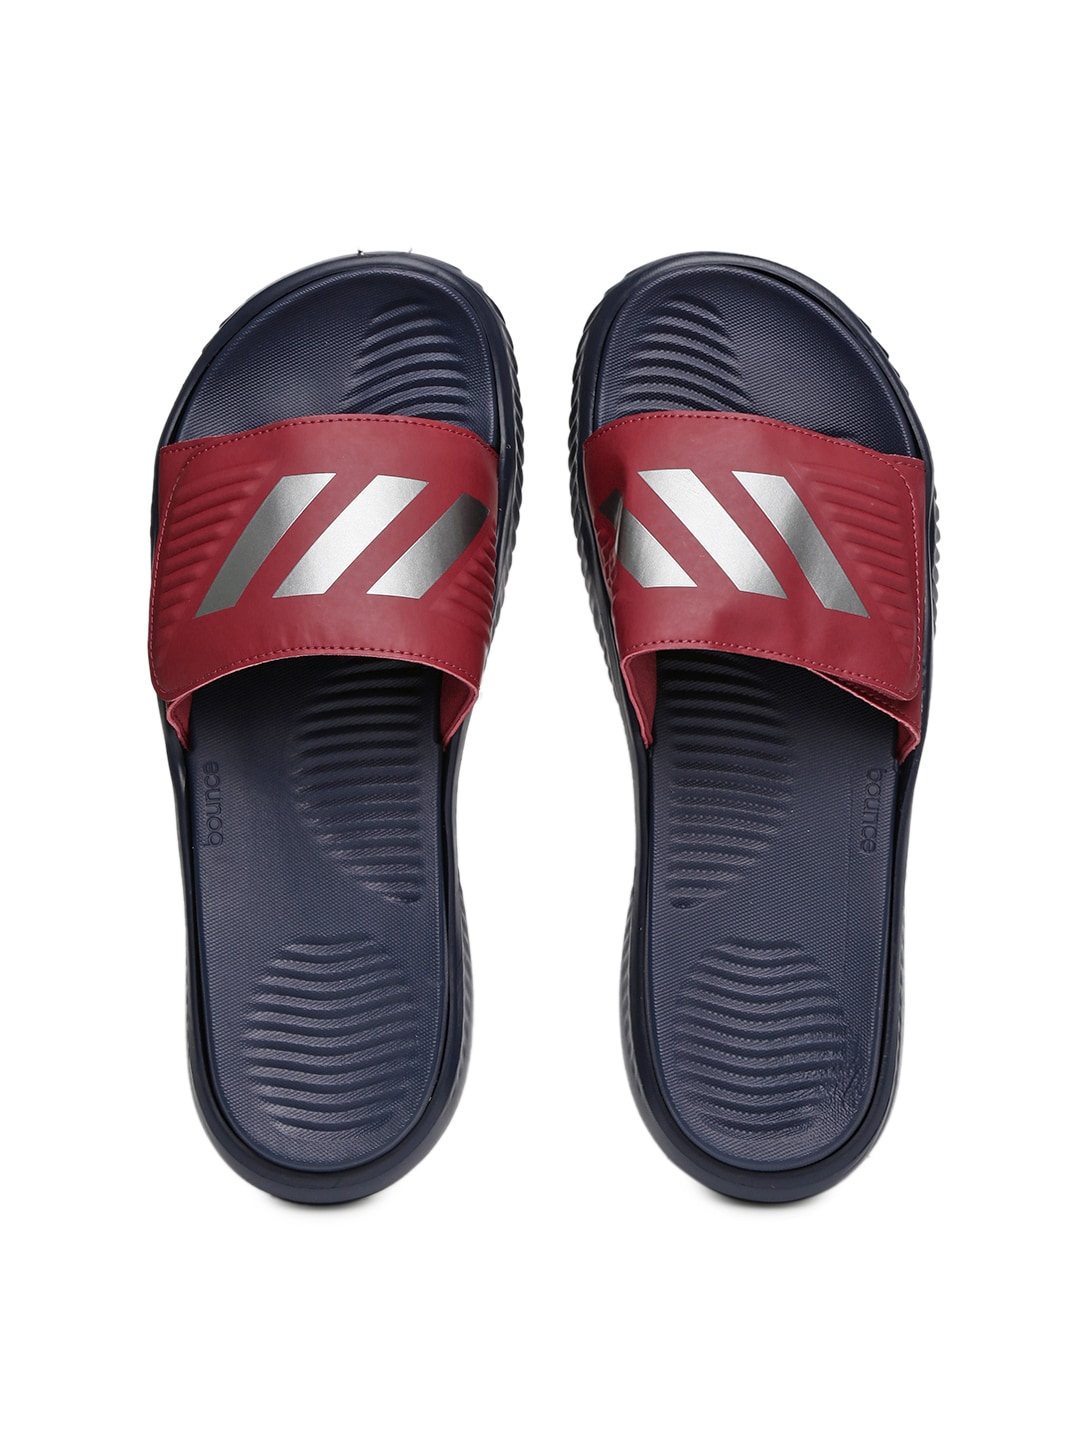 6fd28ad79a624 adidas bounce slides